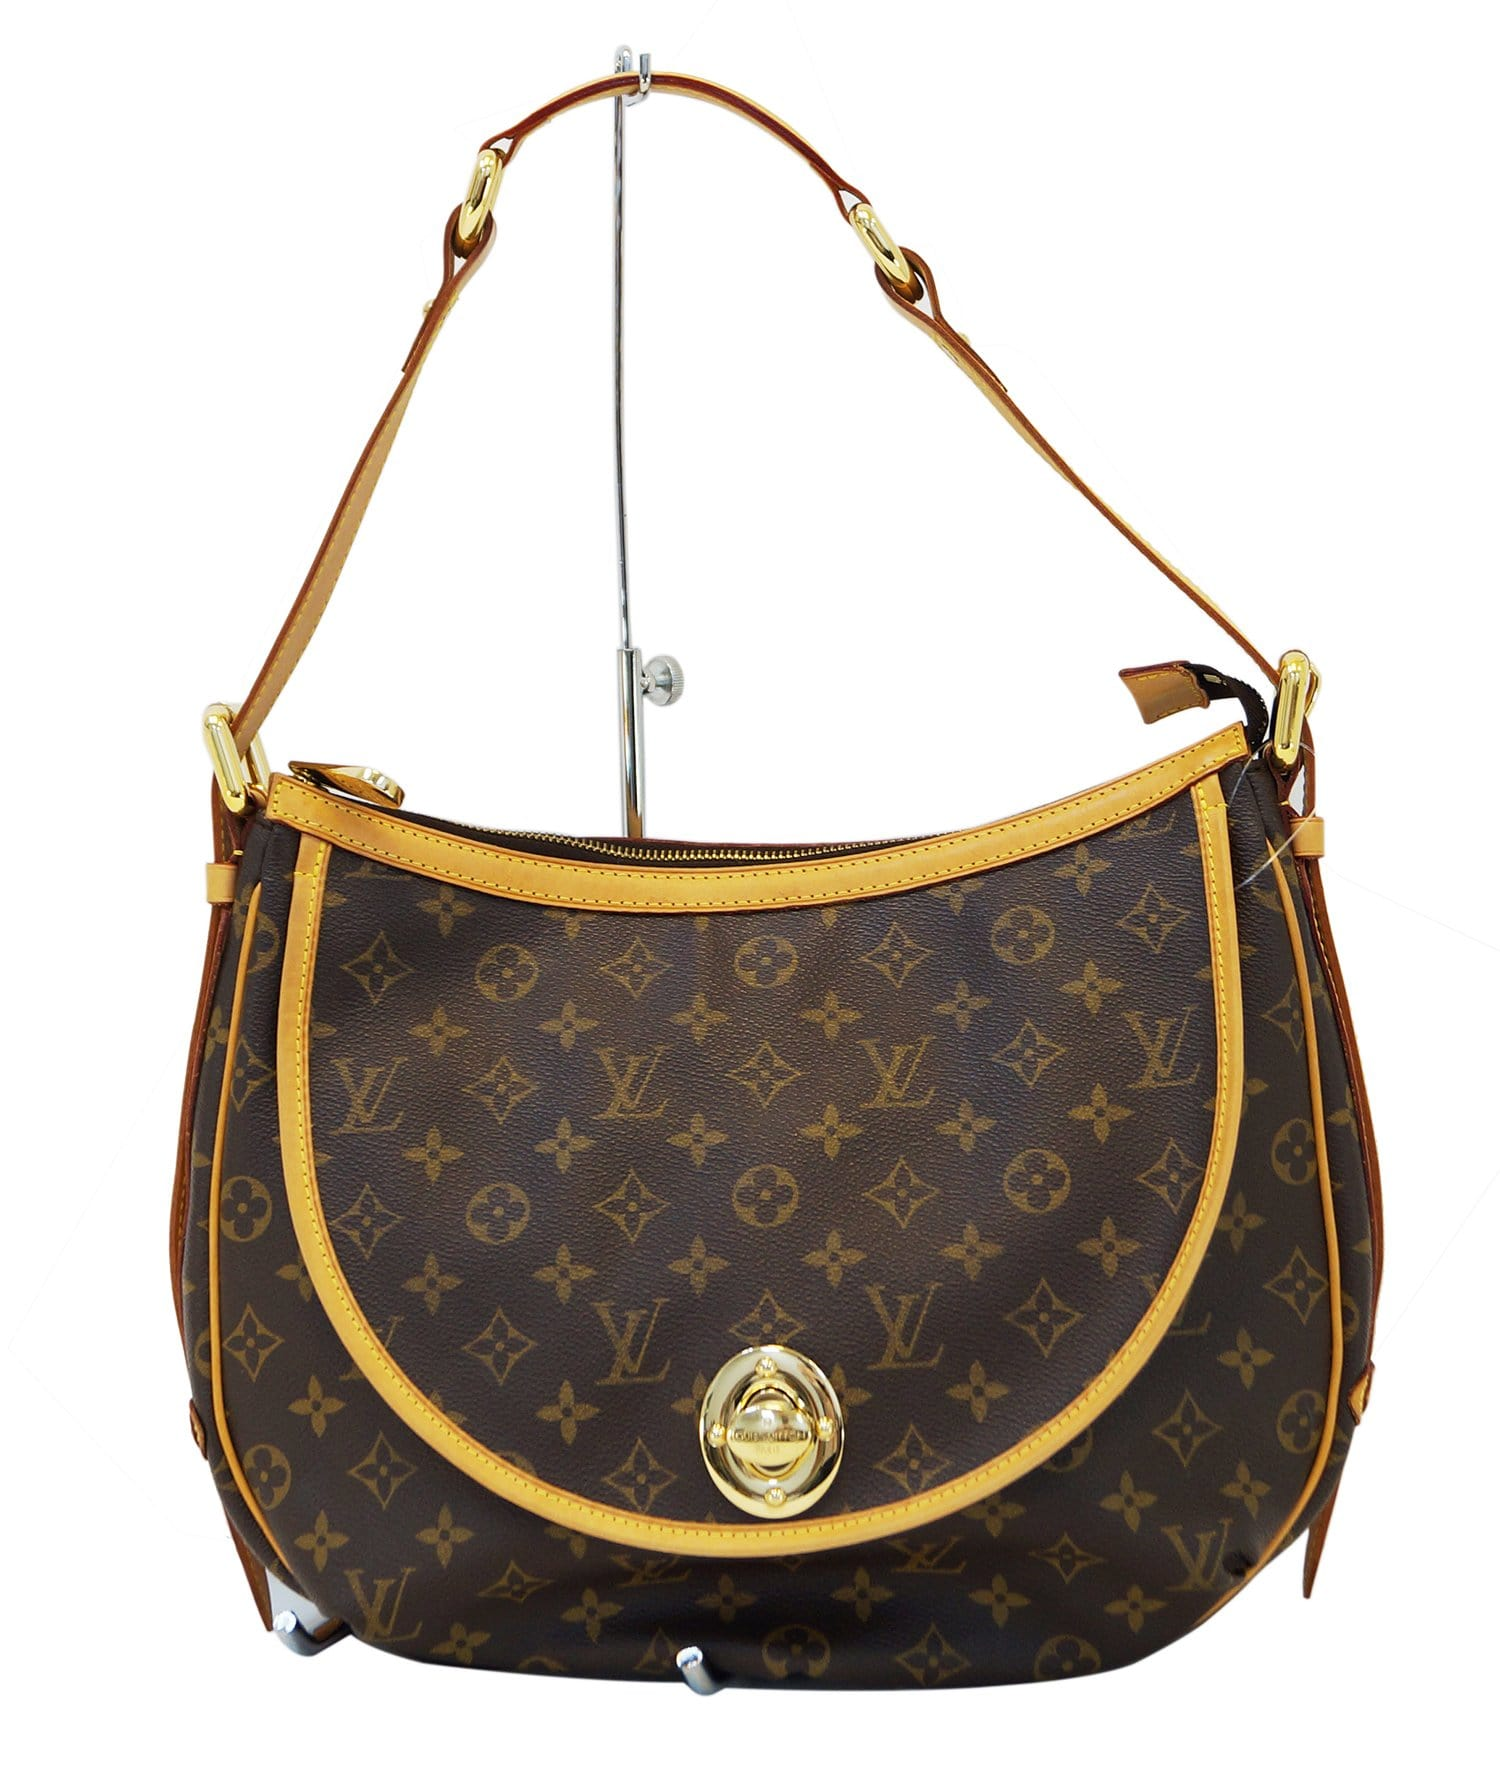 fd2c8b80901d LOUIS VUITTON Monogram Tulum GM Shoulder Bag